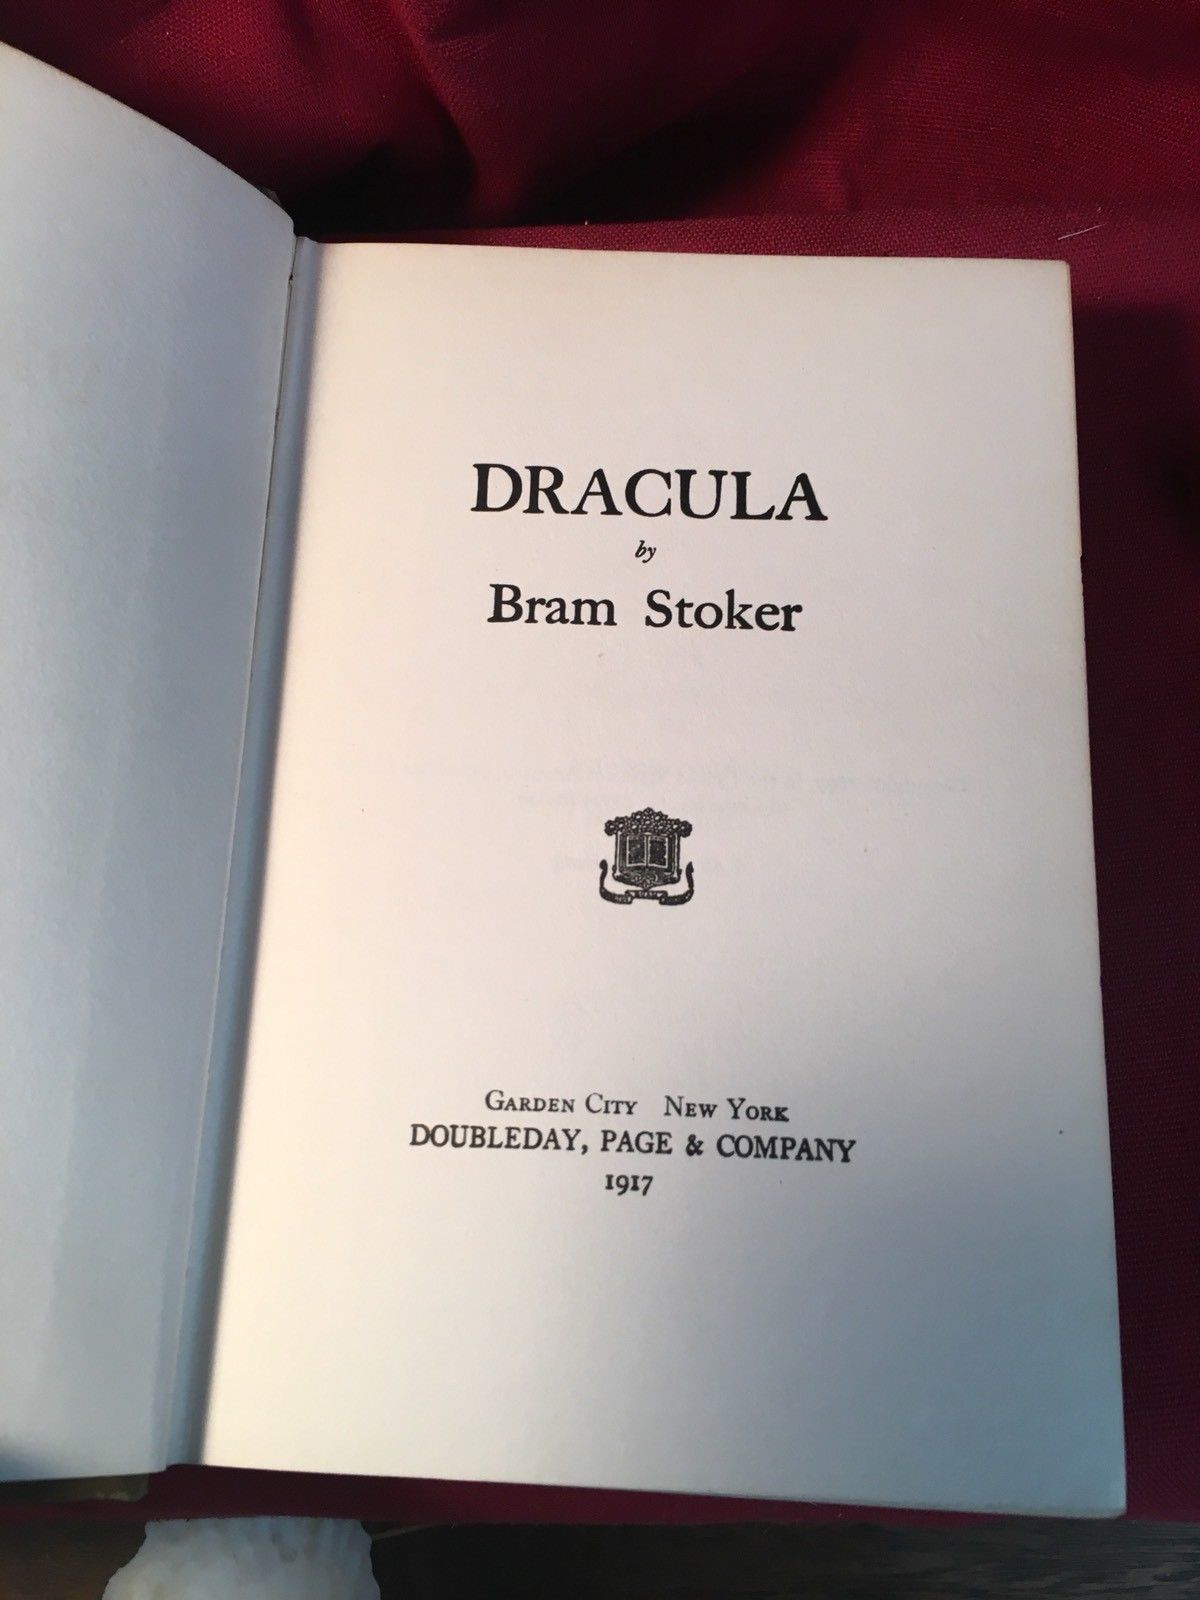 DRACULA by Bram Stoker. Early Doubleday hardback with Decorative Cover